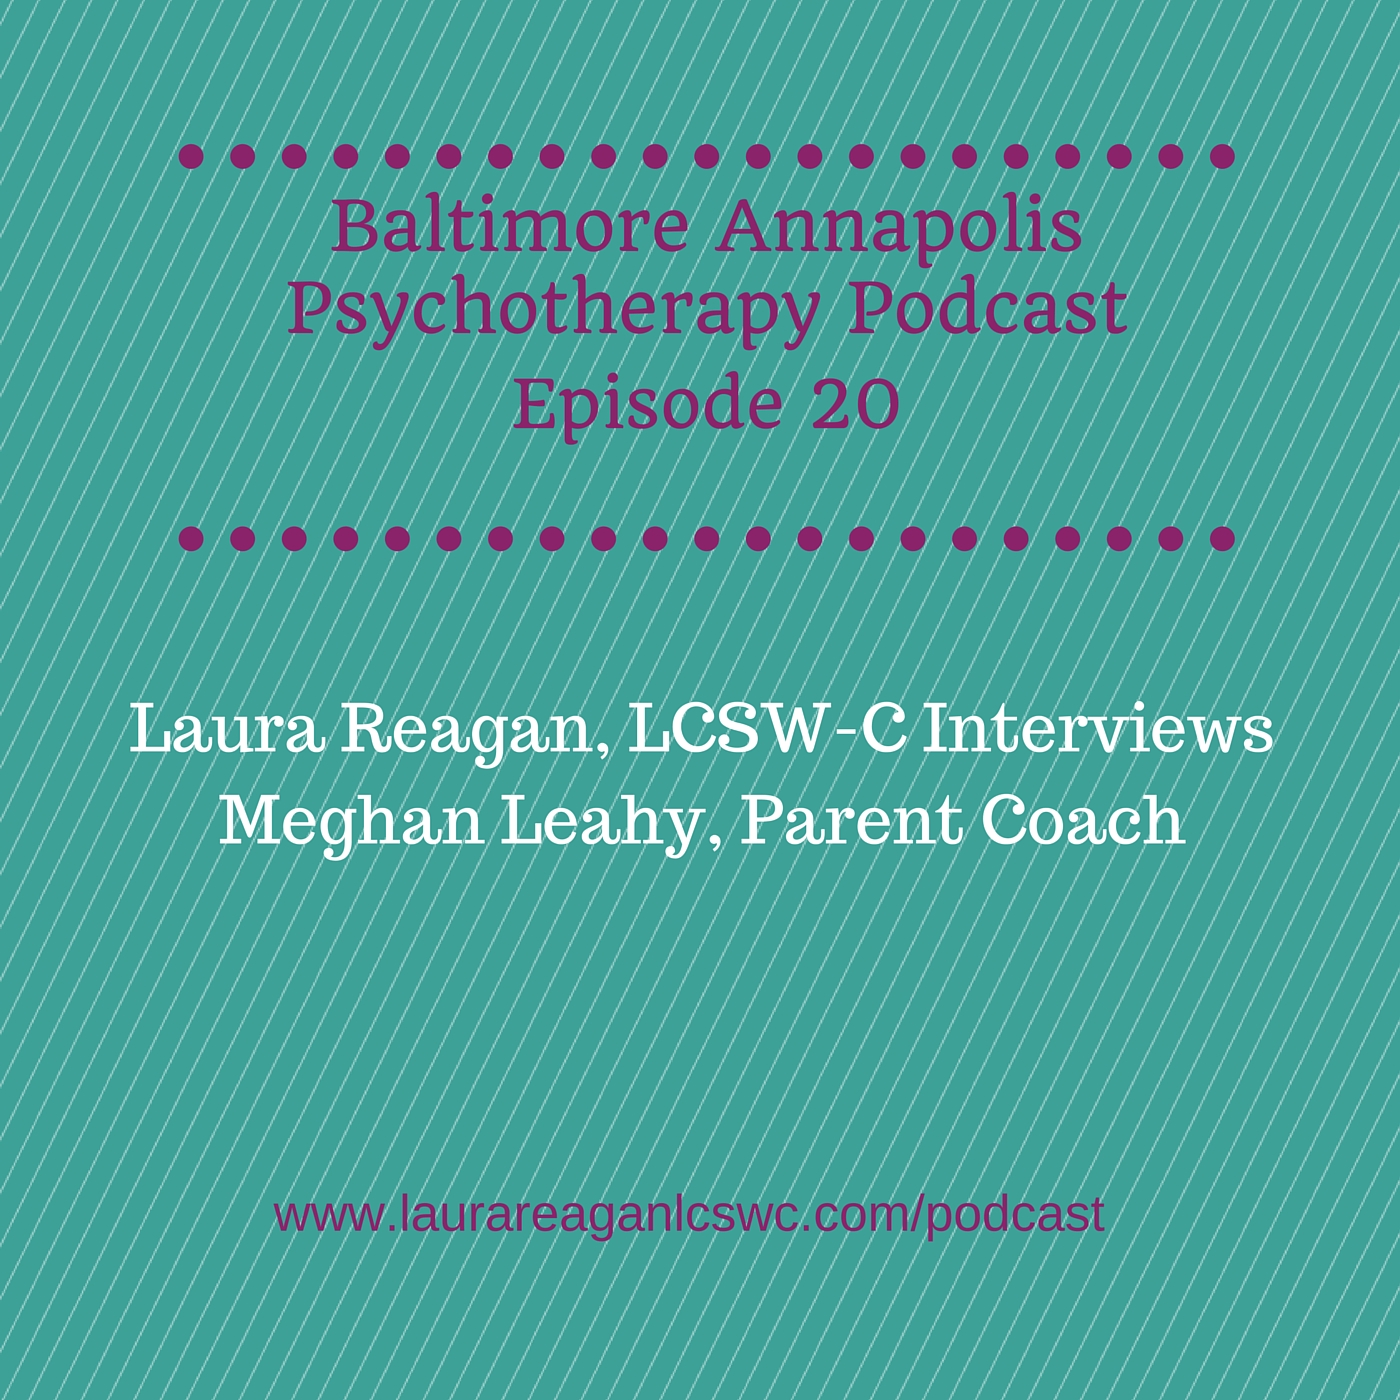 CLICK HERE TO LISTEN TO PODCAST EPISODE 20 OF THE BALTIMORE ANNAPOLIS PSYCHOTHERAPY PODCAST!